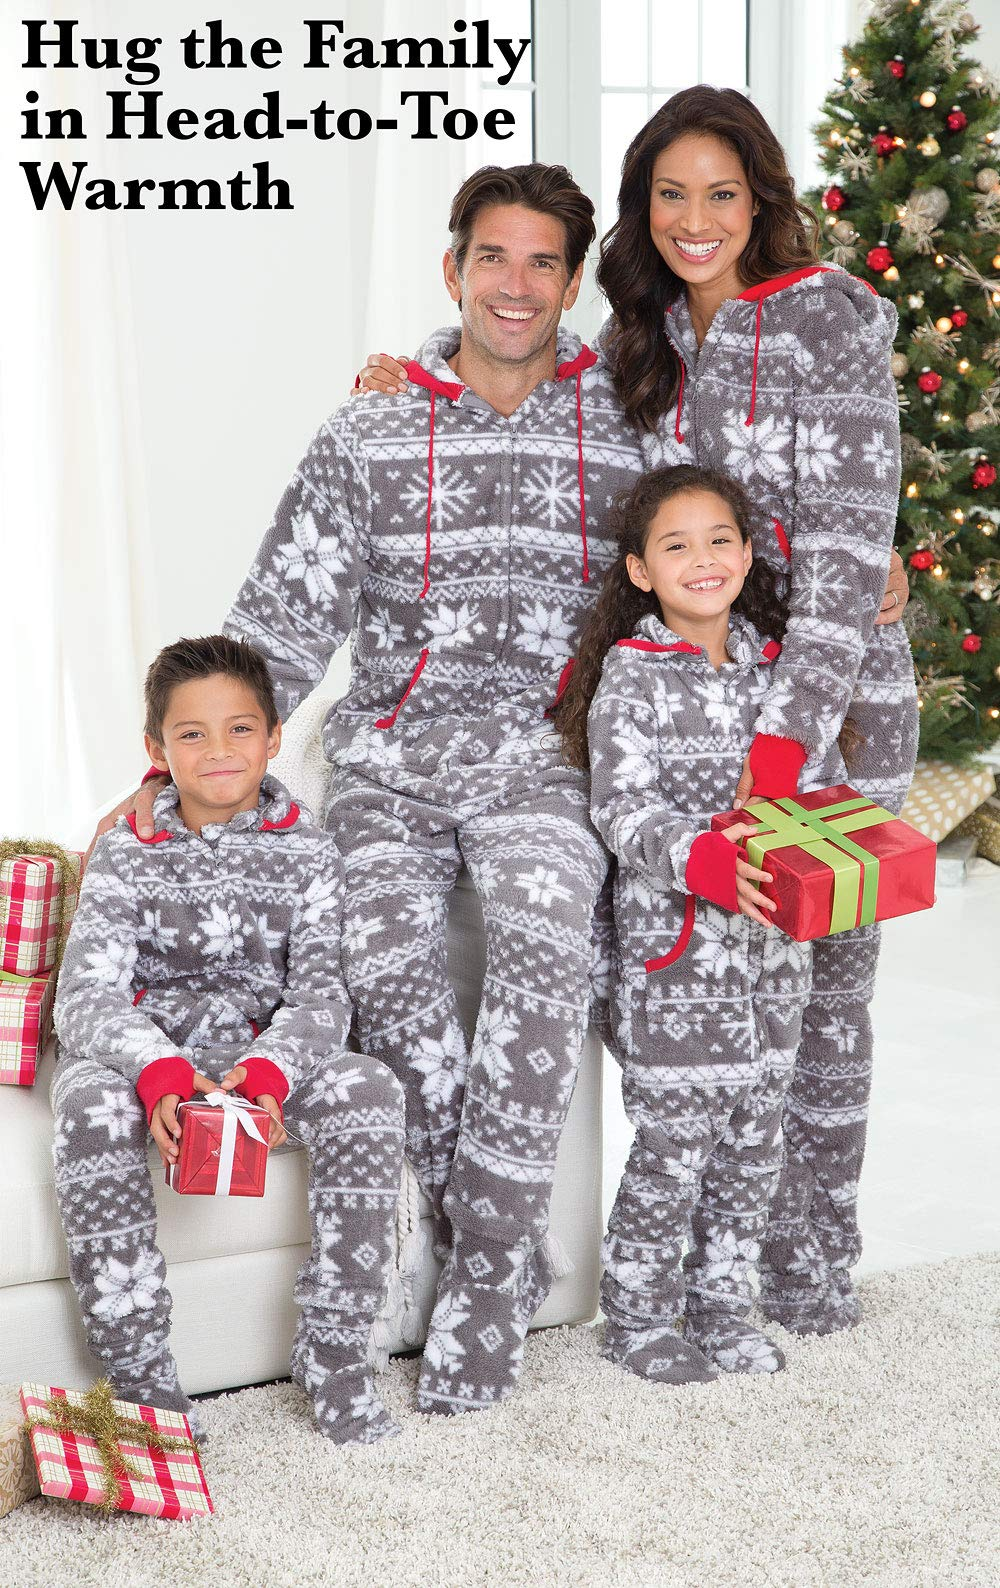 Christmas Onesies.Pajamagram Family Pajamas Matching Sets Nordic Fleece Christmas Onesie Gray